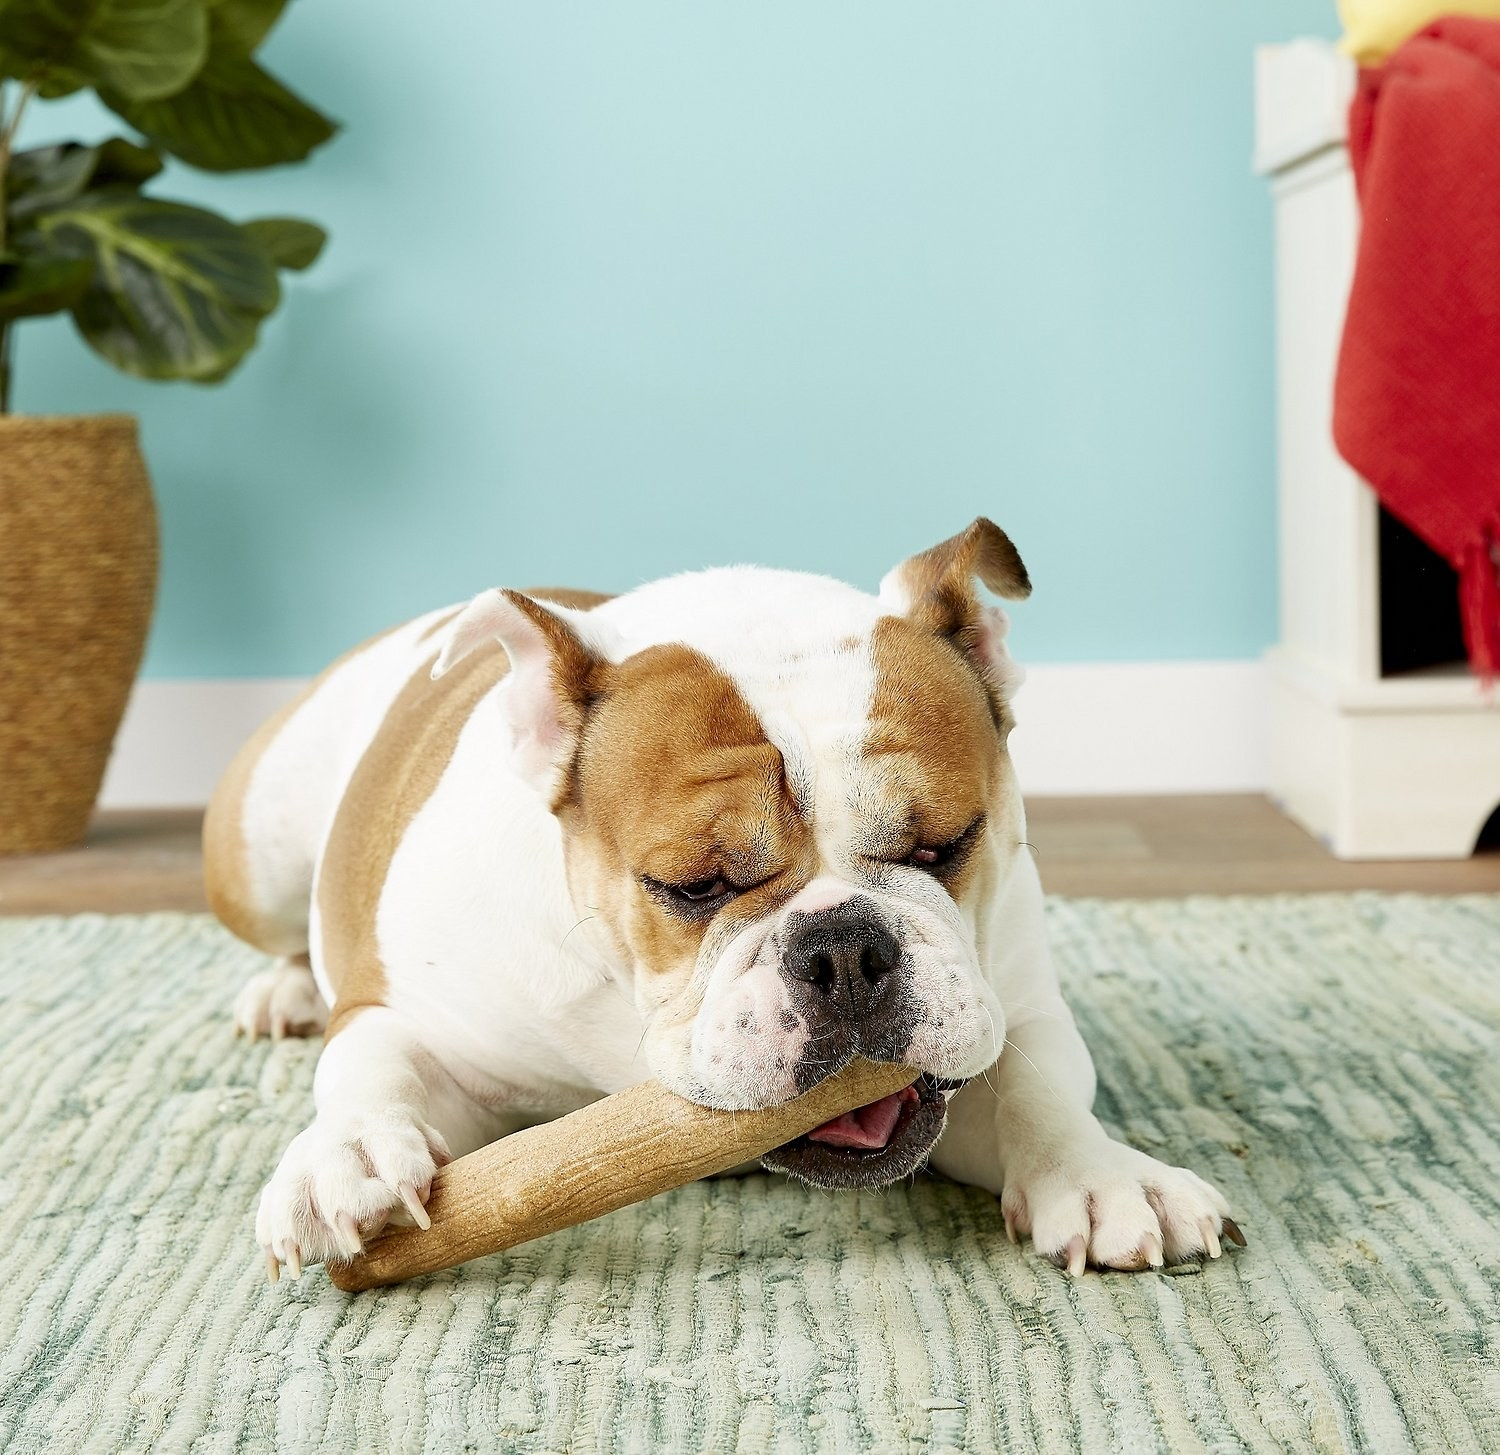 Bulldog chewing on the log-shaped toy